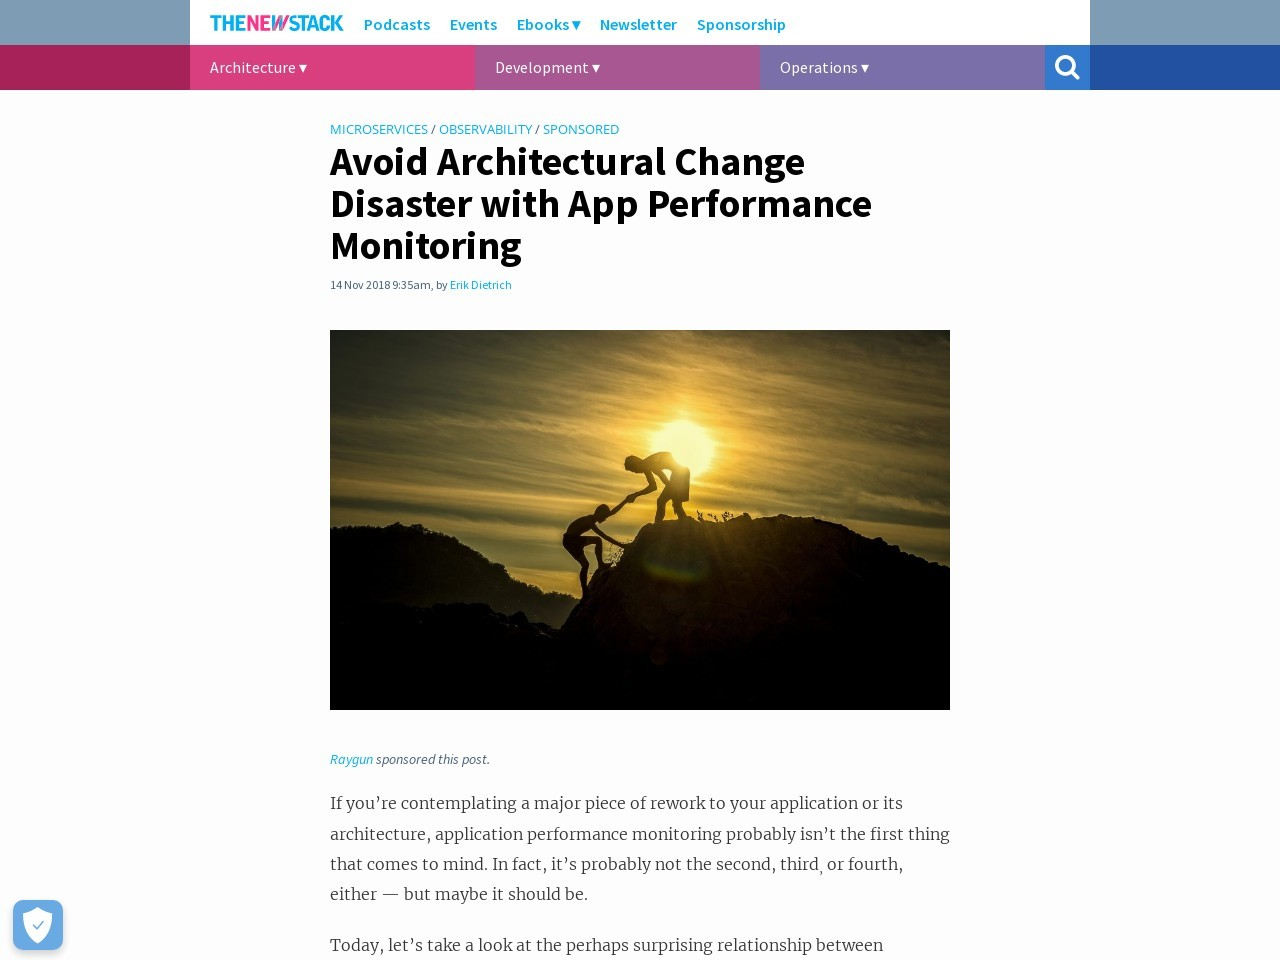 Avoid Architectural Change Disaster with App Performance Monitoring